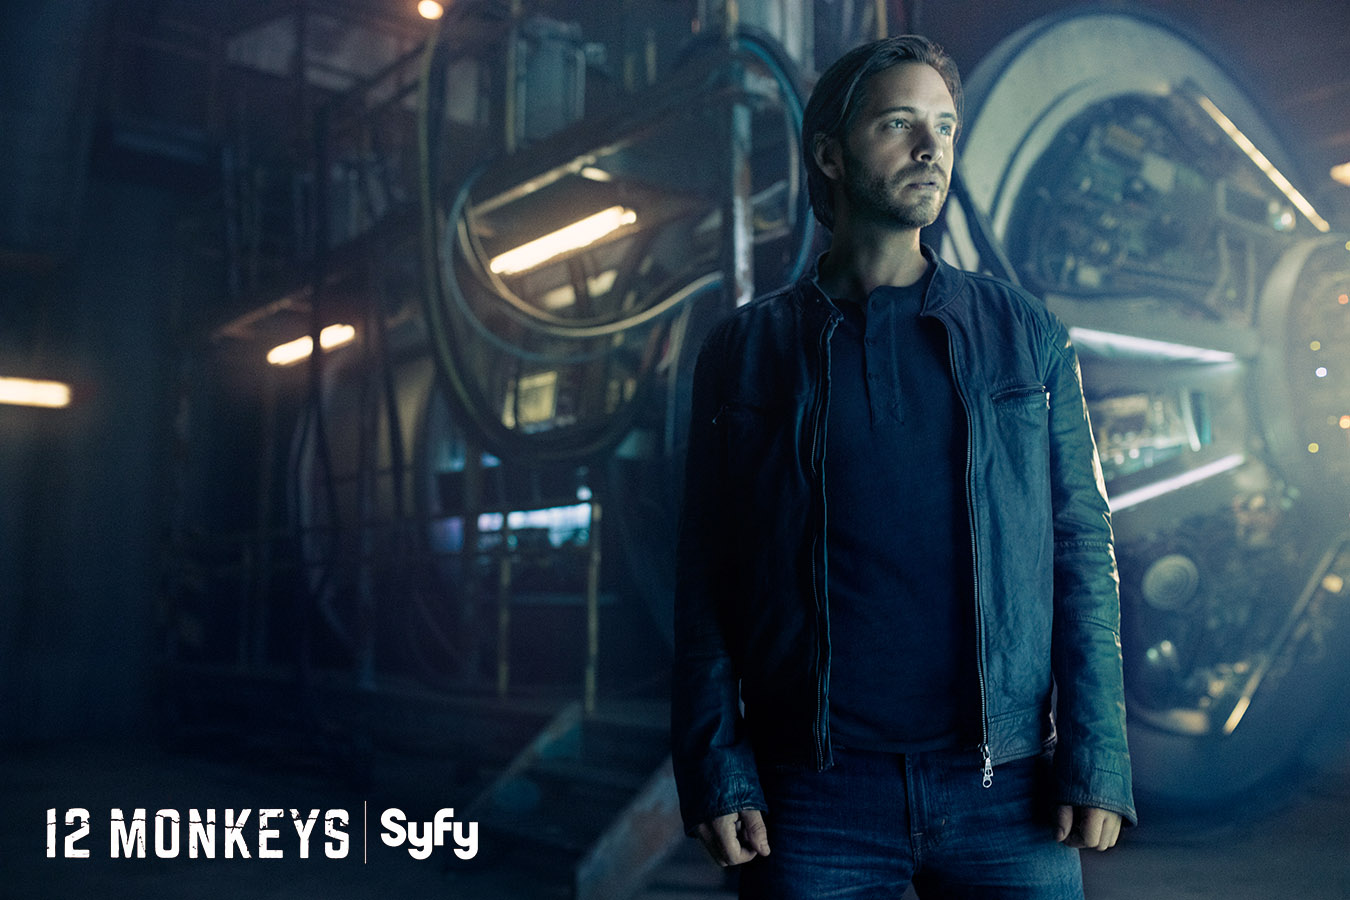 Ad2978_03-12Monkeys-SyFy-KurtIswarienko-THPP